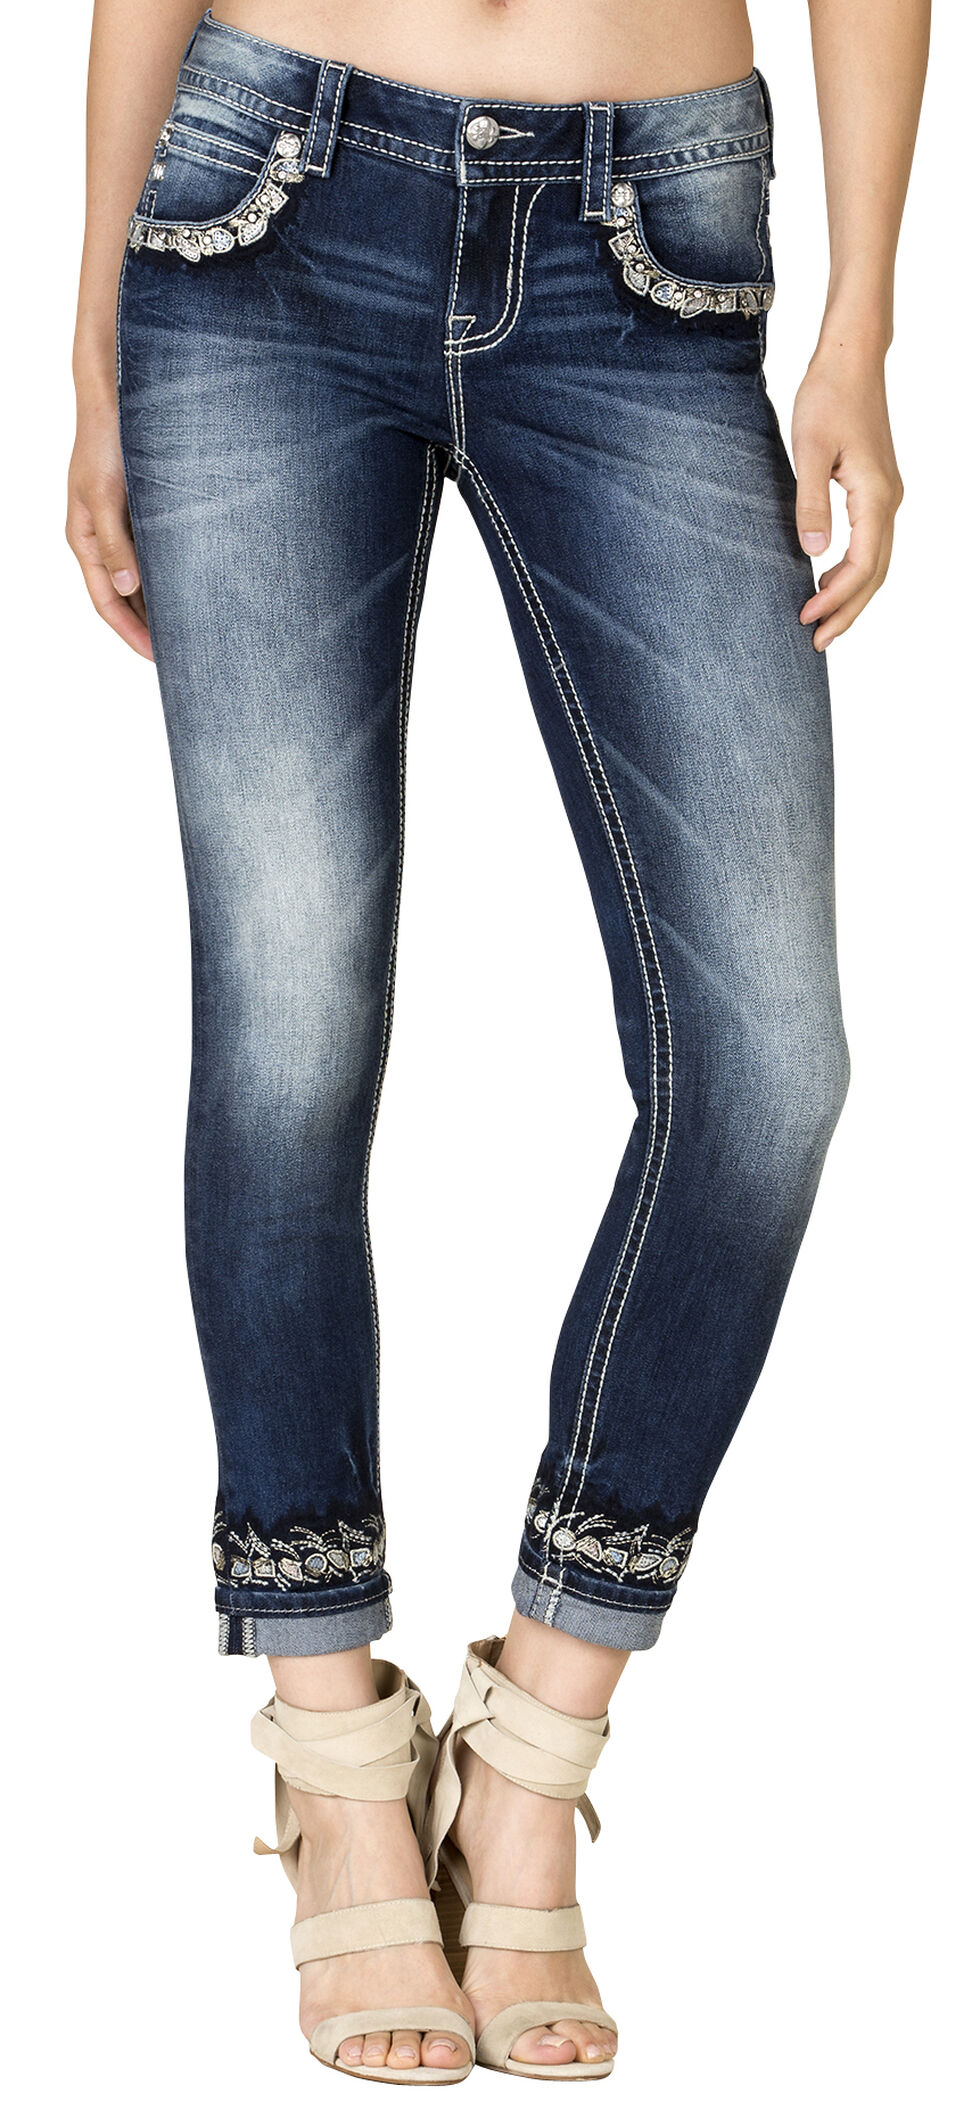 Miss Me Women's Hidden Charm Mid-Rise Cuffed Skinny Jeans, Blue, hi-res